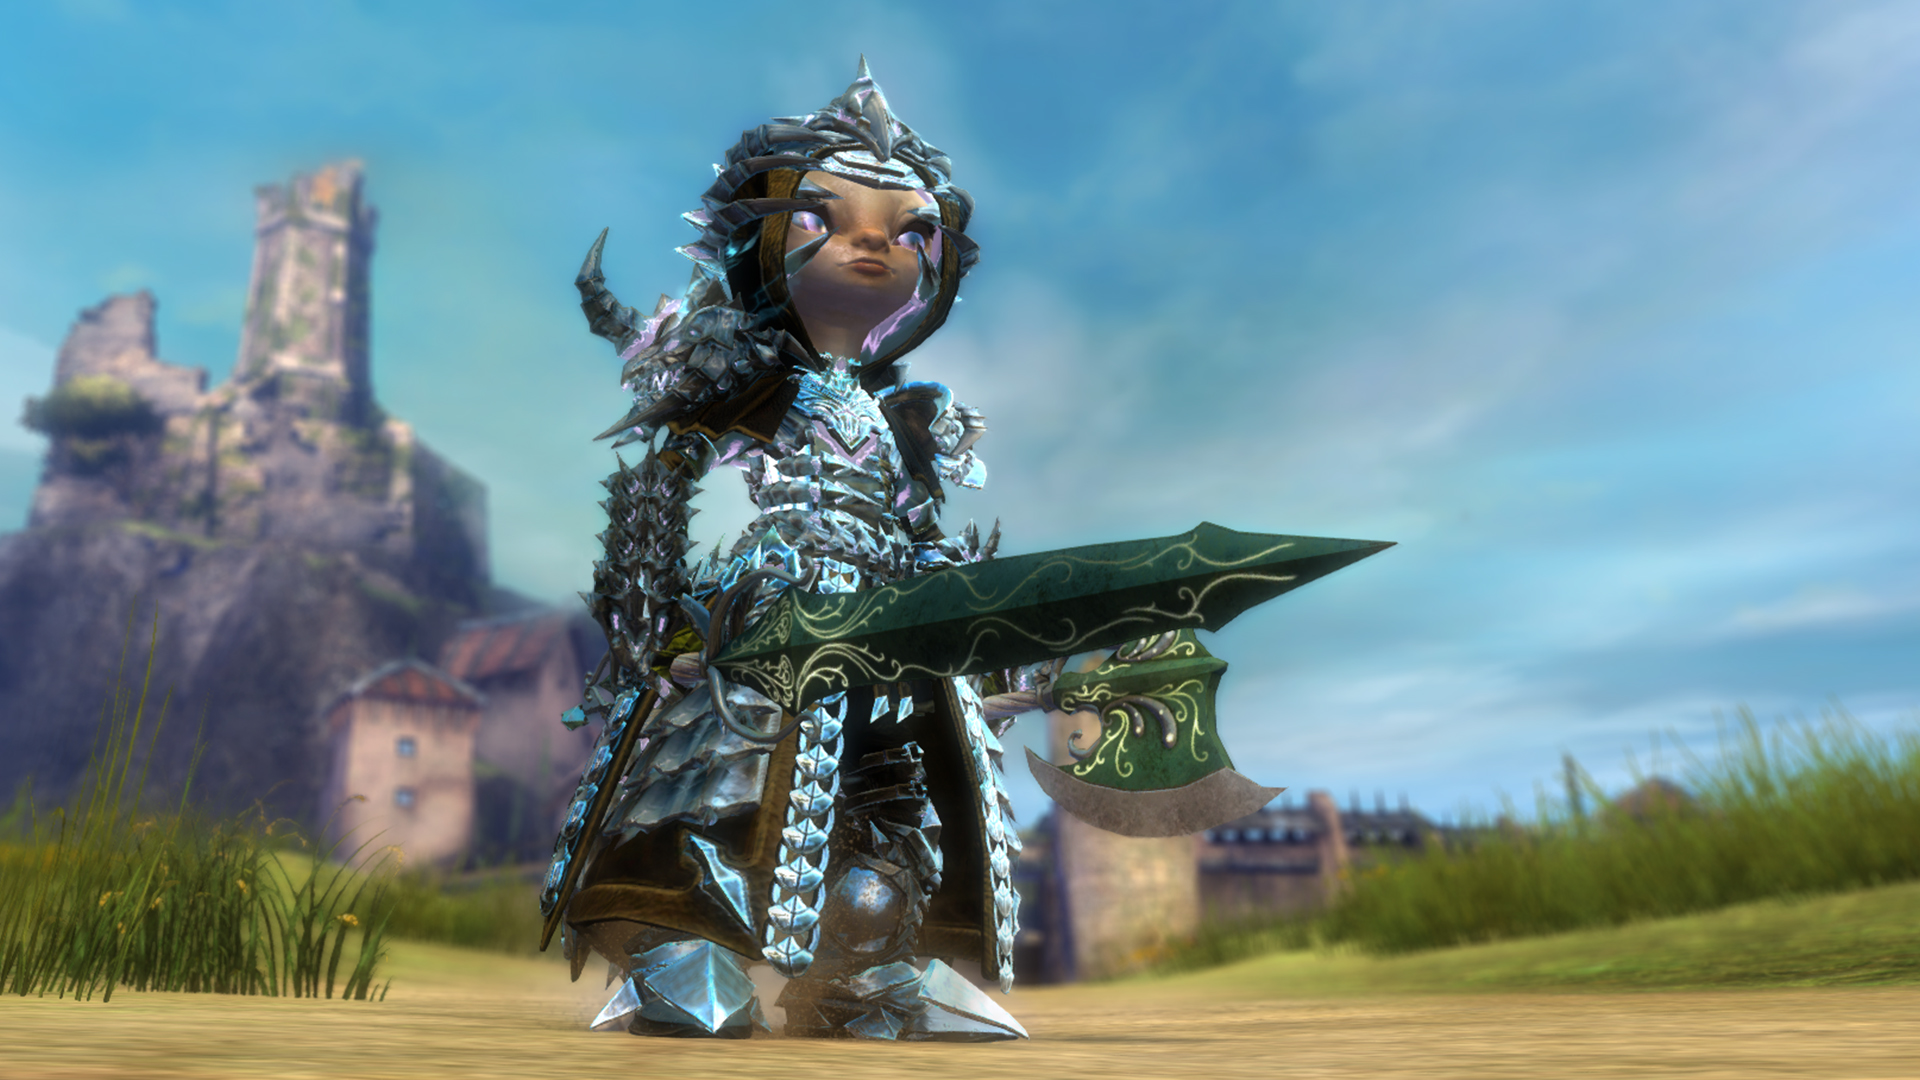 GW2 Legendary Armor Coming Next Tuesday - Dulfy